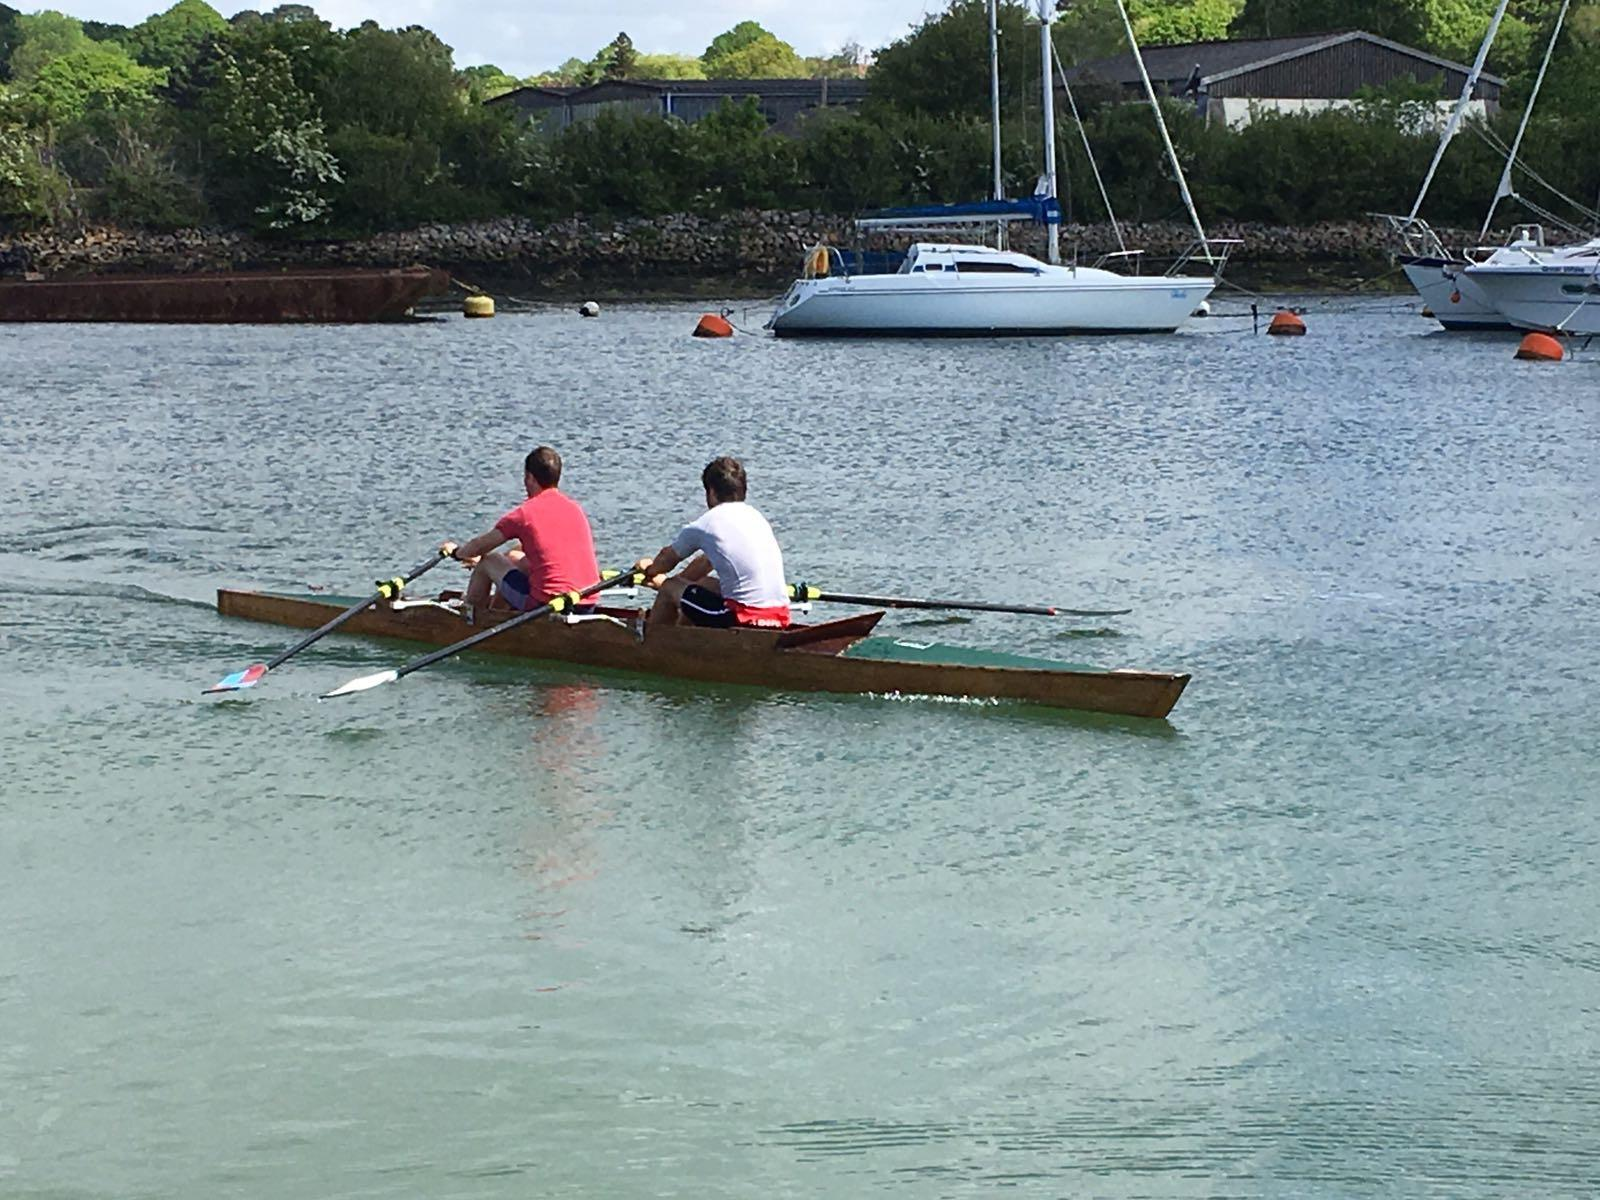 Lymington Rowing Club will attempt to break the River Thames record